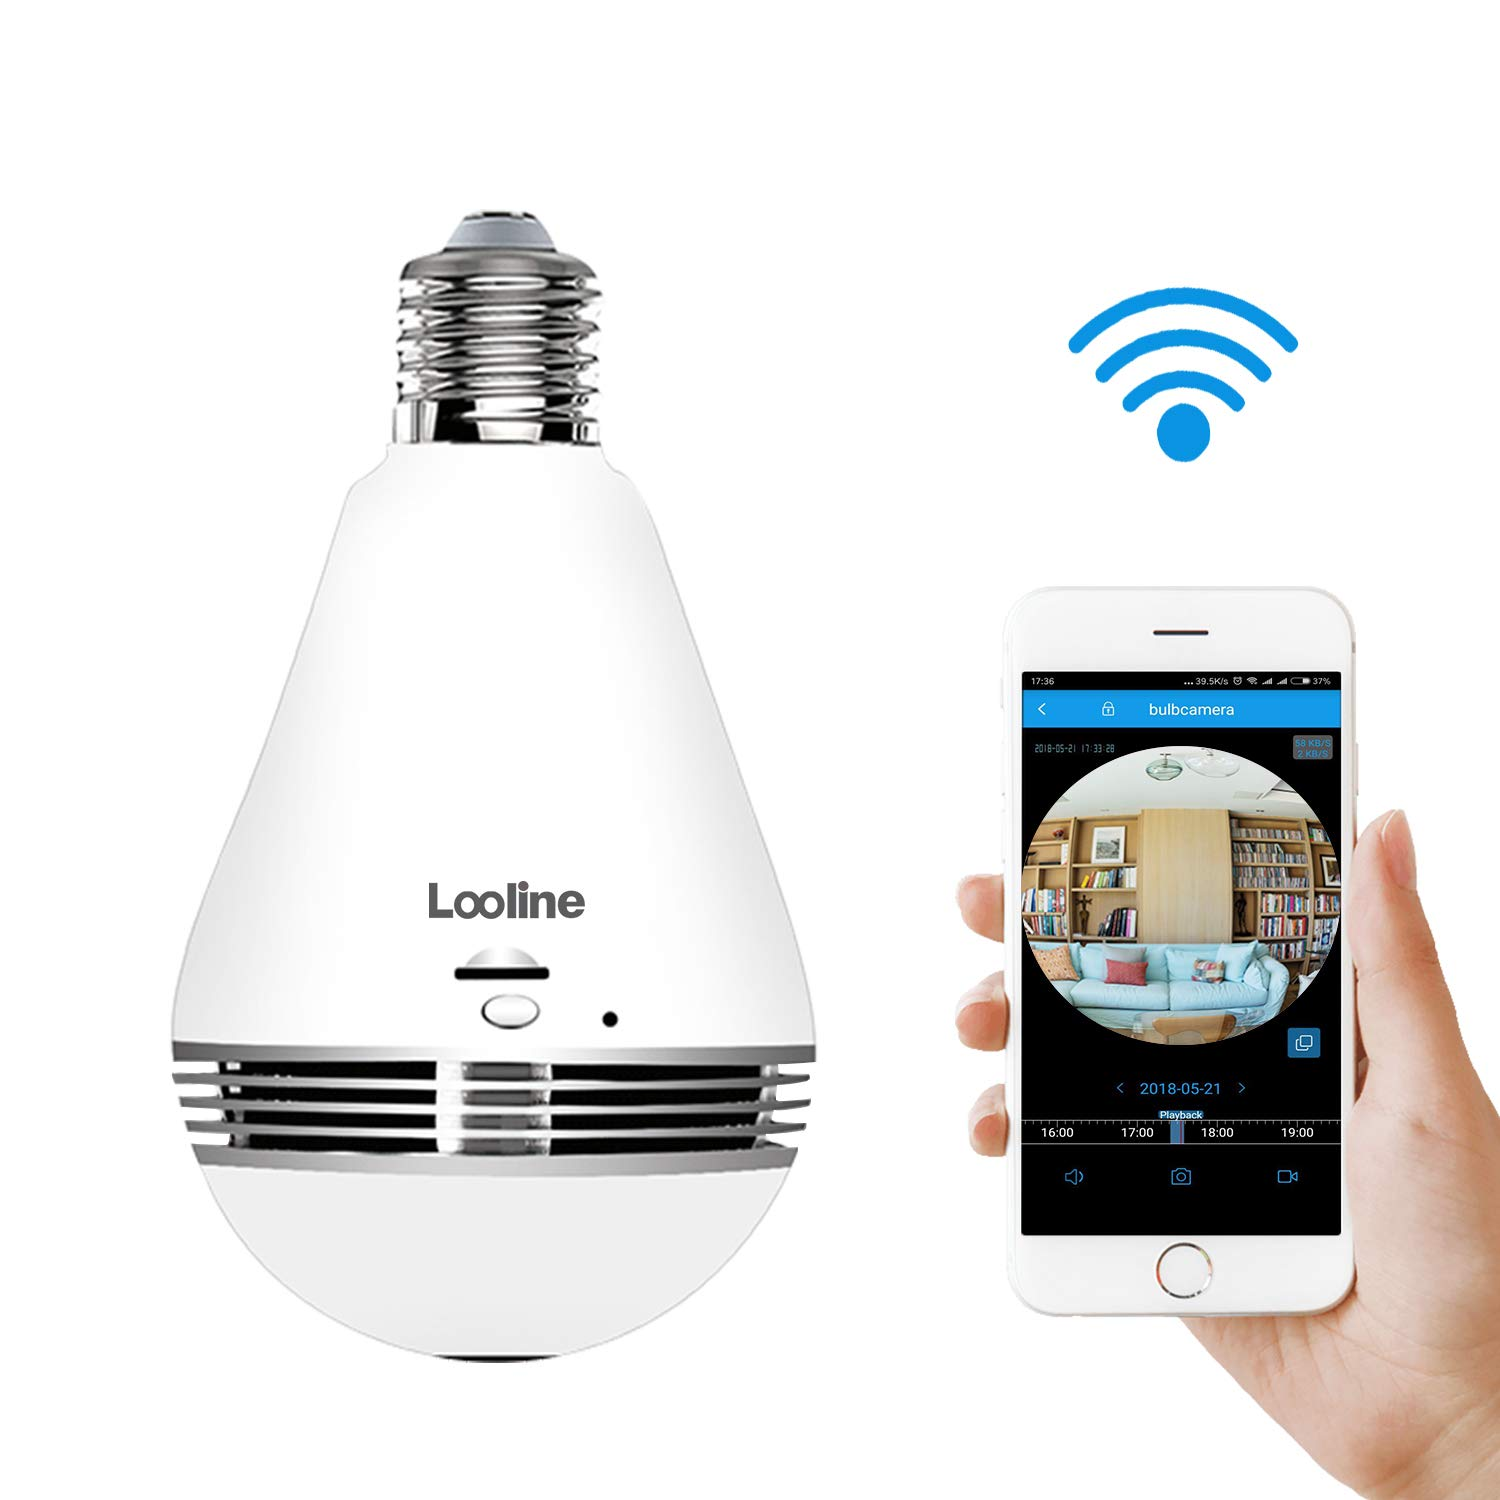 Light Bulb Camera VR Panoramic IP Wireless WiFi Camera Include 16GB TFCard with Cloud Store 360 Degree Fisheye Lens Lighting Lamp for Home Security Camera Bulb 960P HD E27 LED Dimmable Lamp by Looline (Image #1)